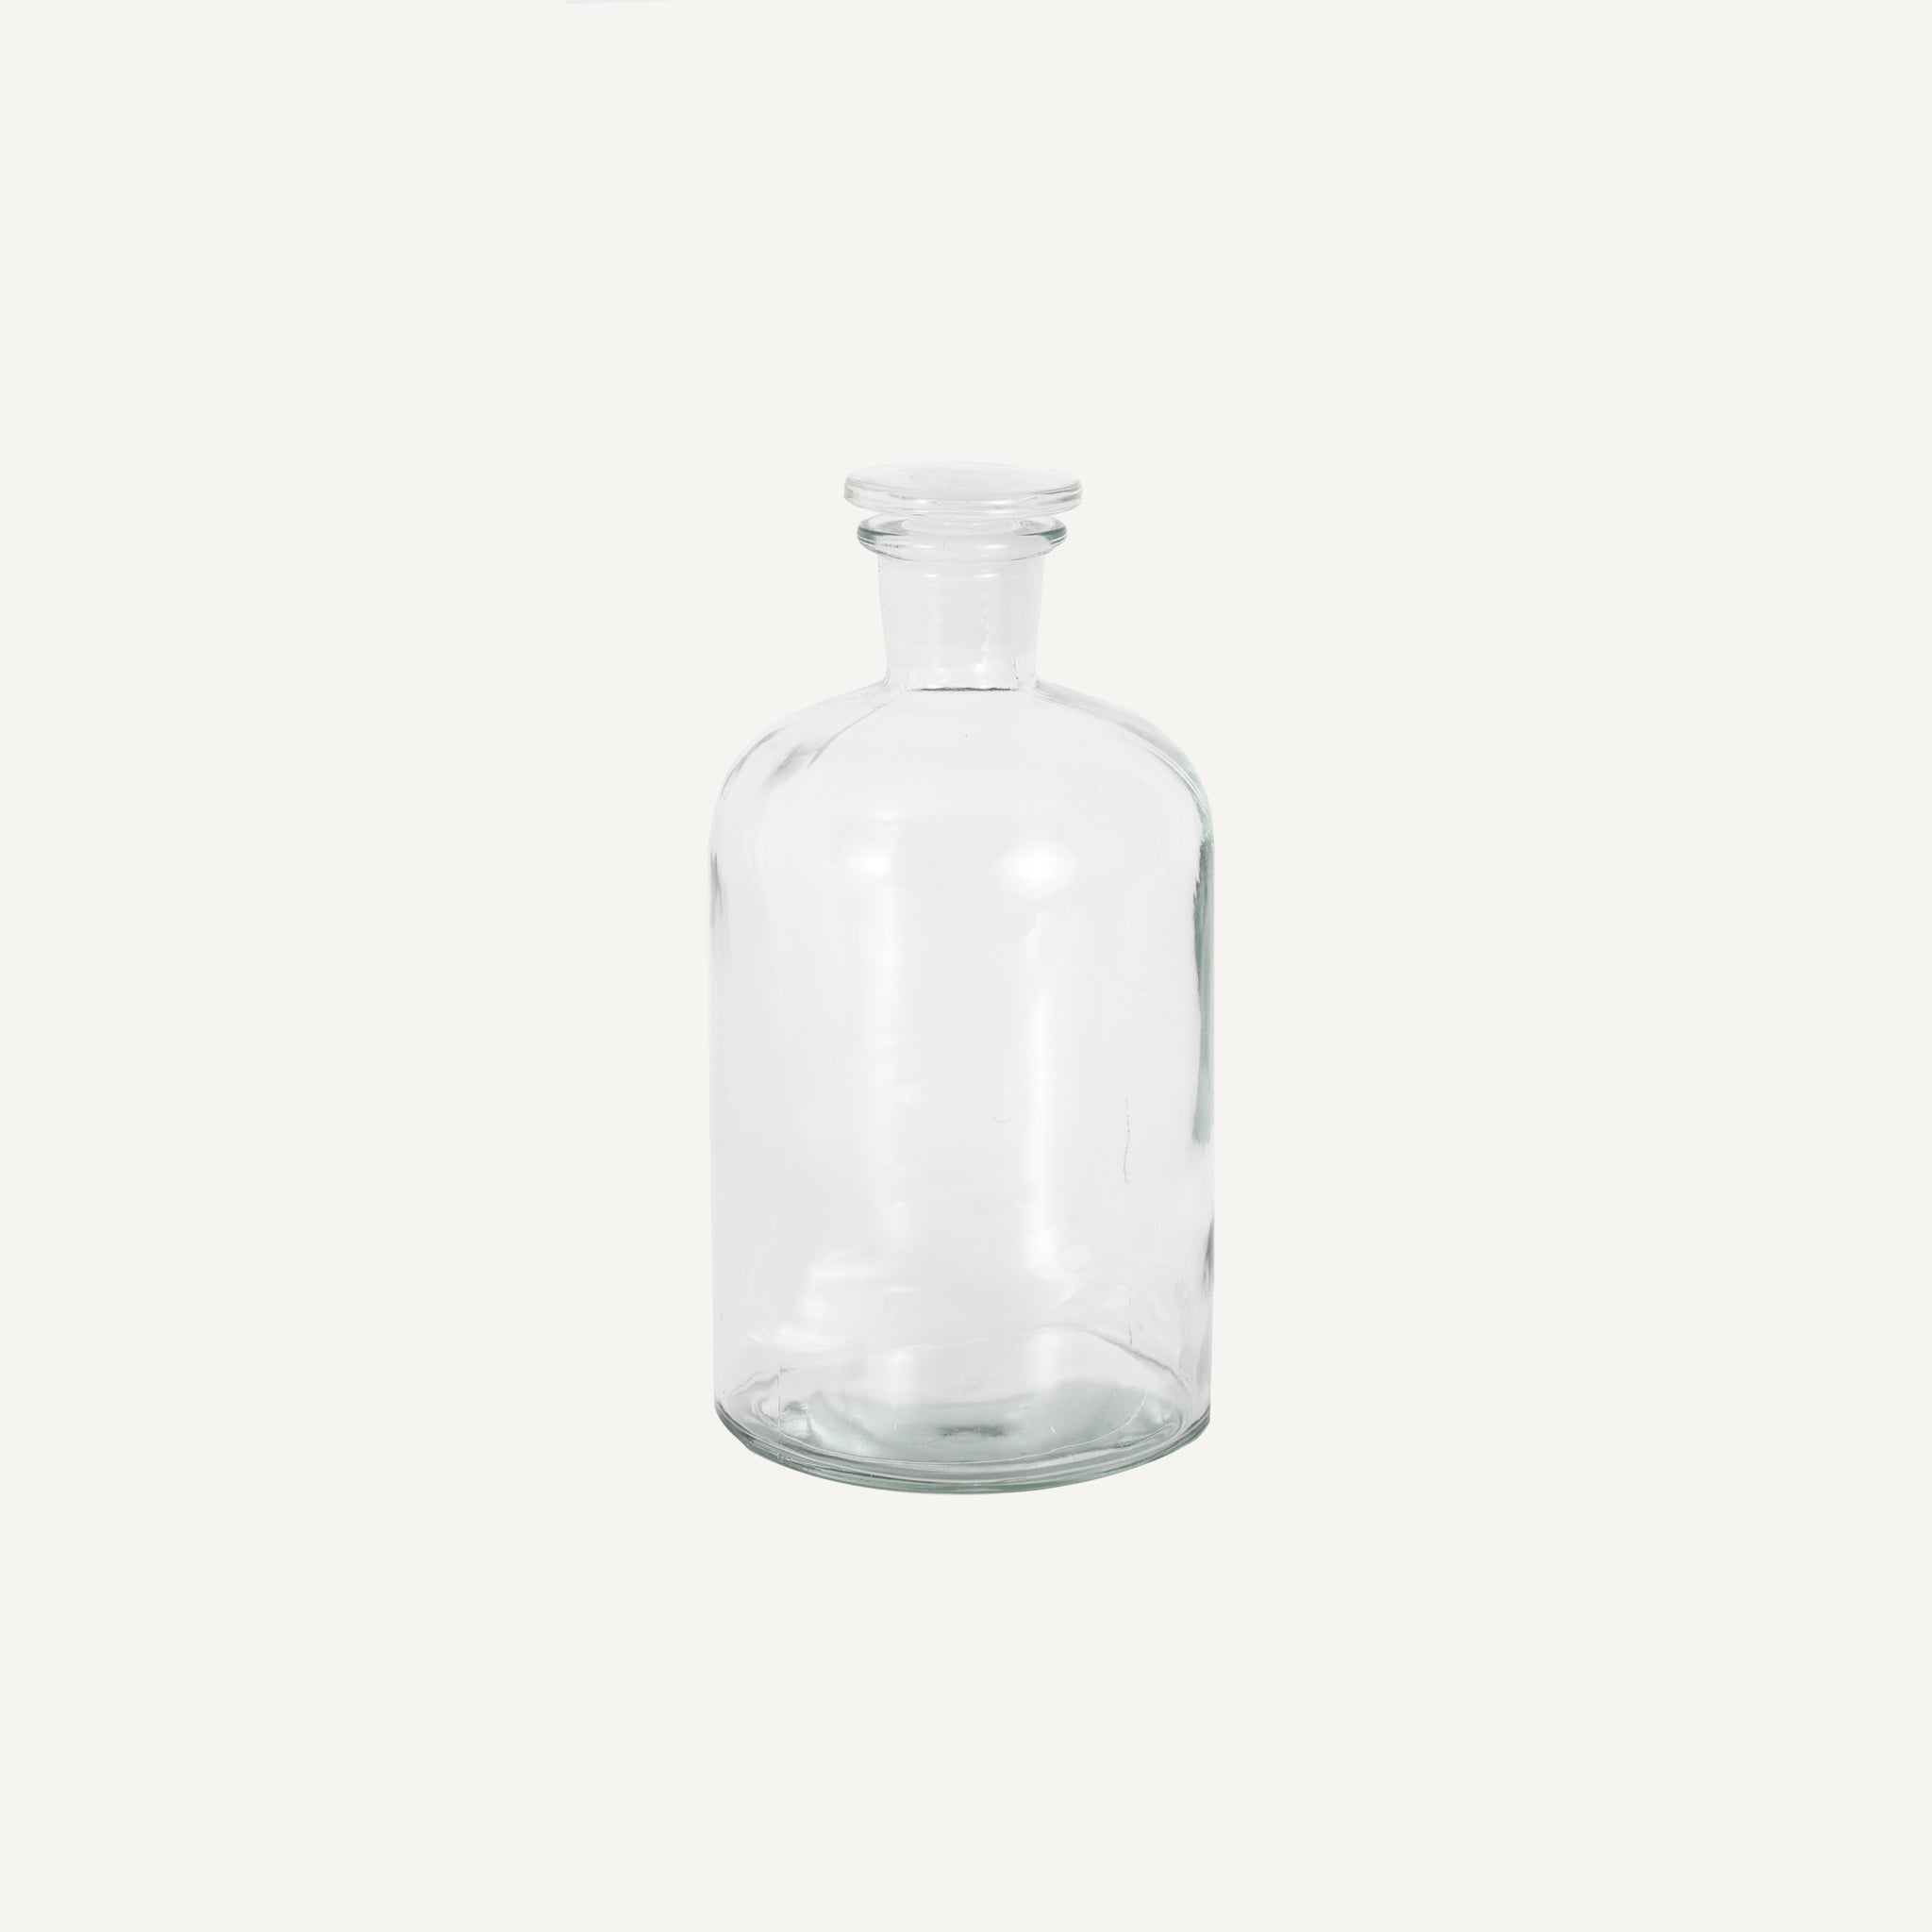 ANTIQUE APOTHECARY JAR WITH STOPPER